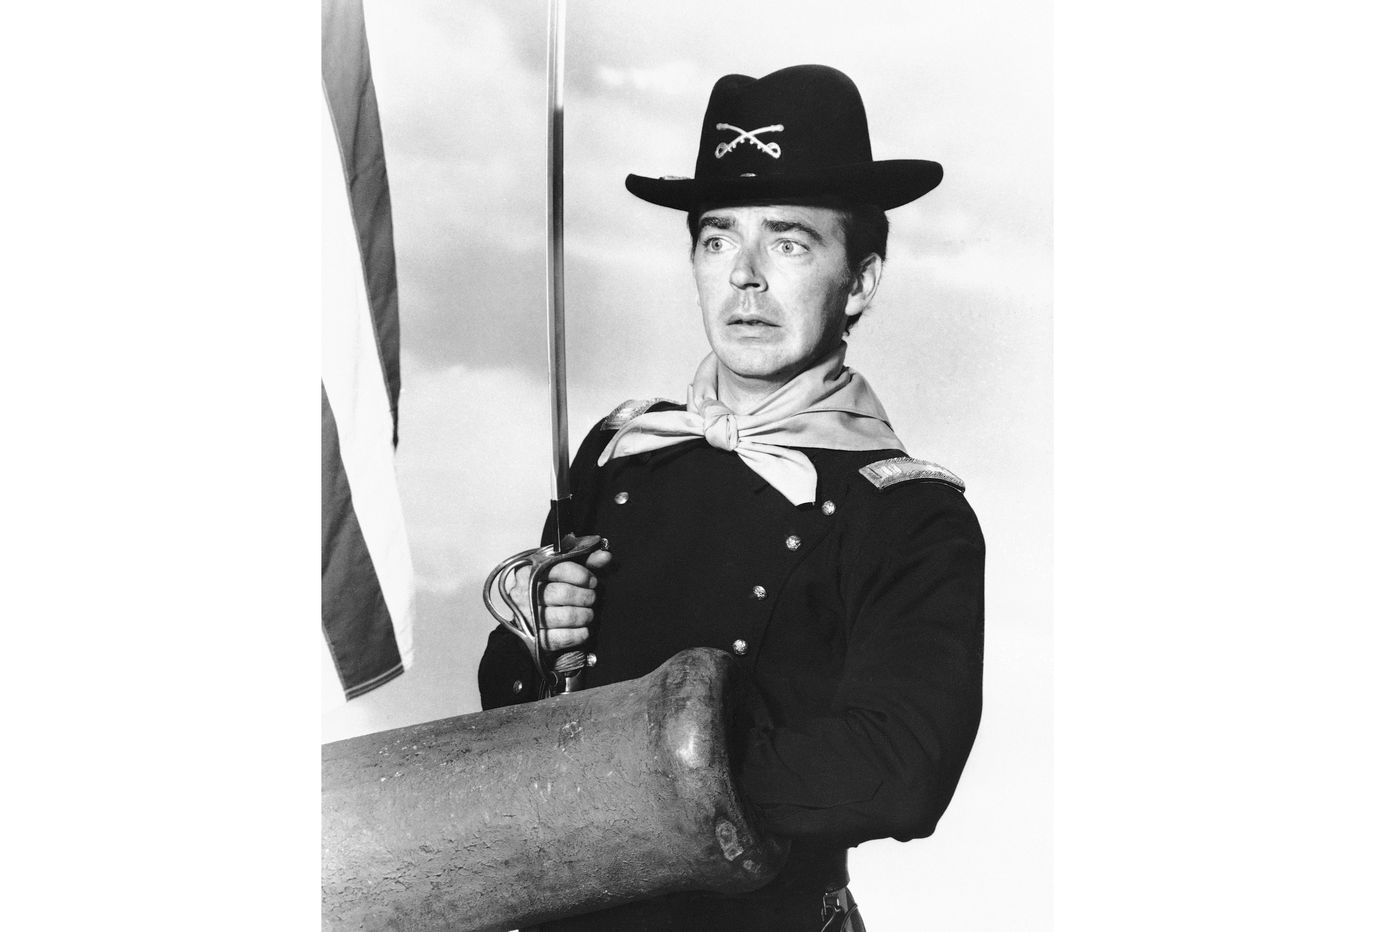 Ken Berry, star of sitcom 'F Troop,' has died at age 85